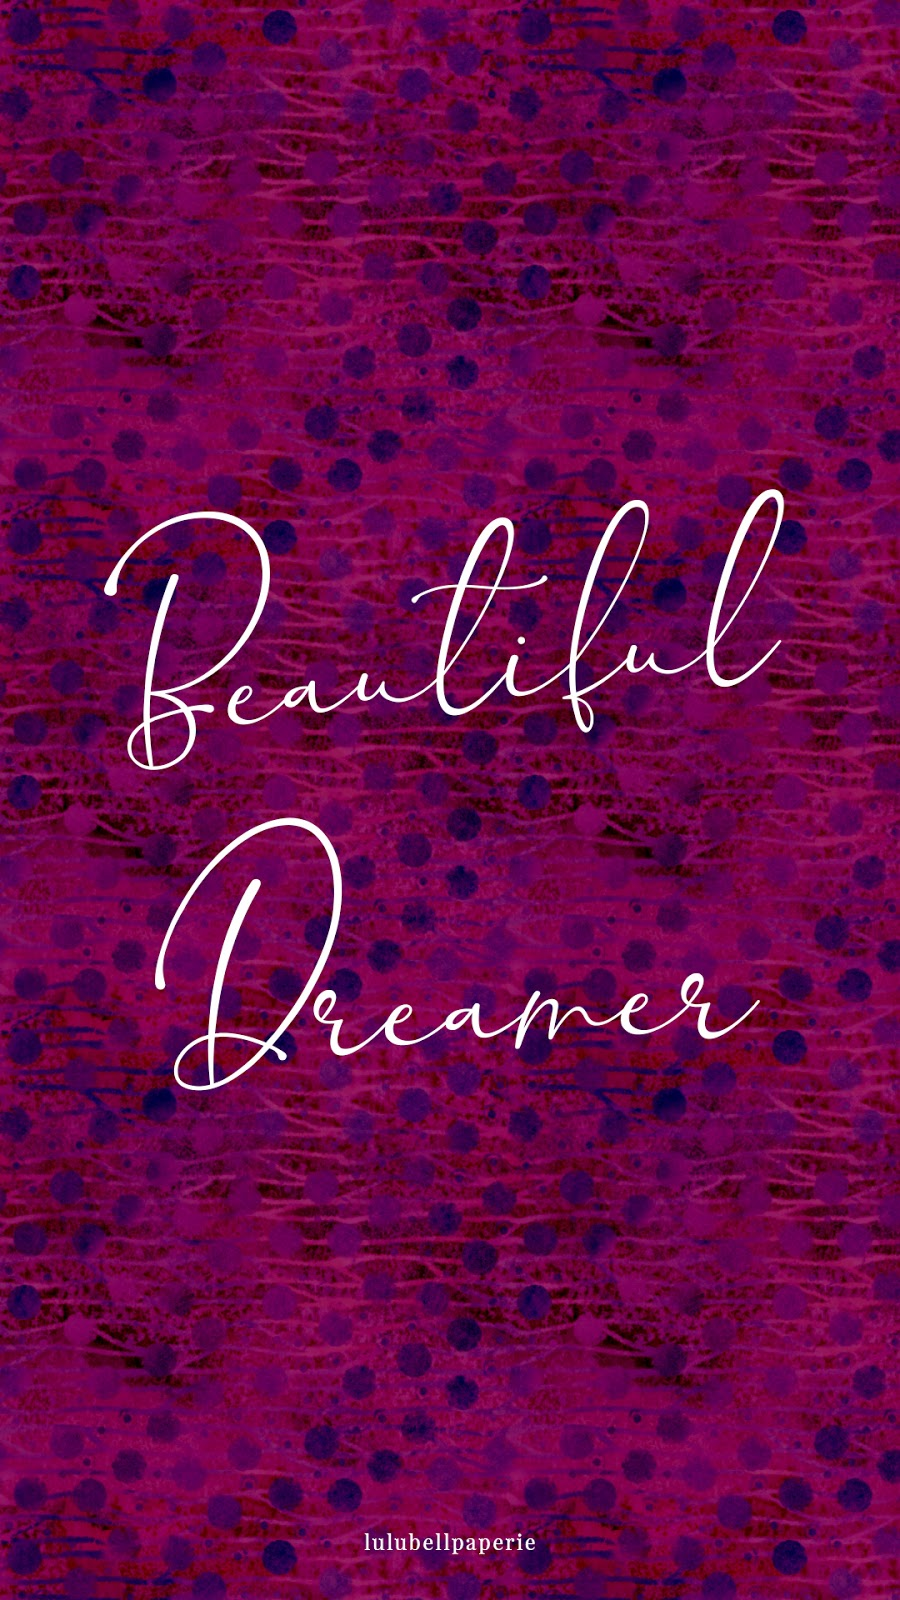 Free Beautiful Dreamer Typography Smartphone Wallpaper Screensaver Background